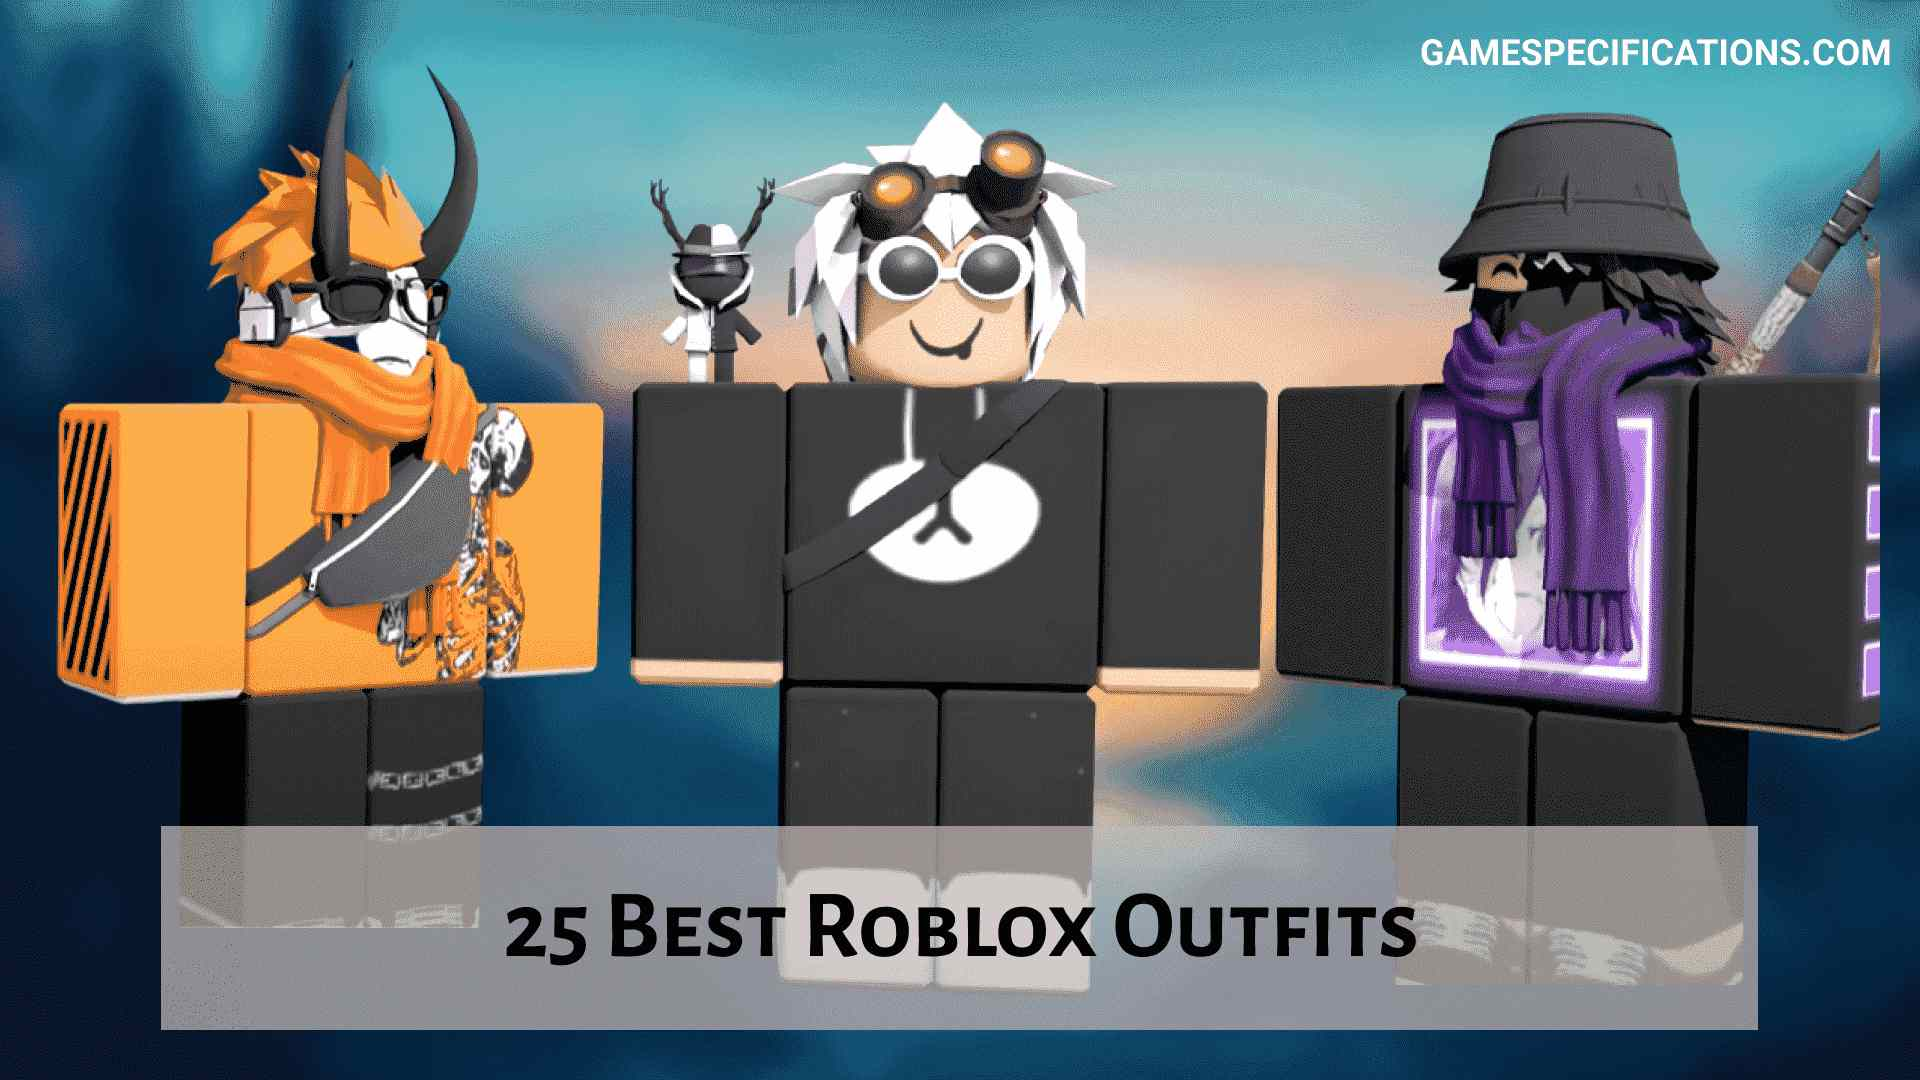 Best 25 Roblox Outfits You Ll Ever Need 2021 Game Specifications